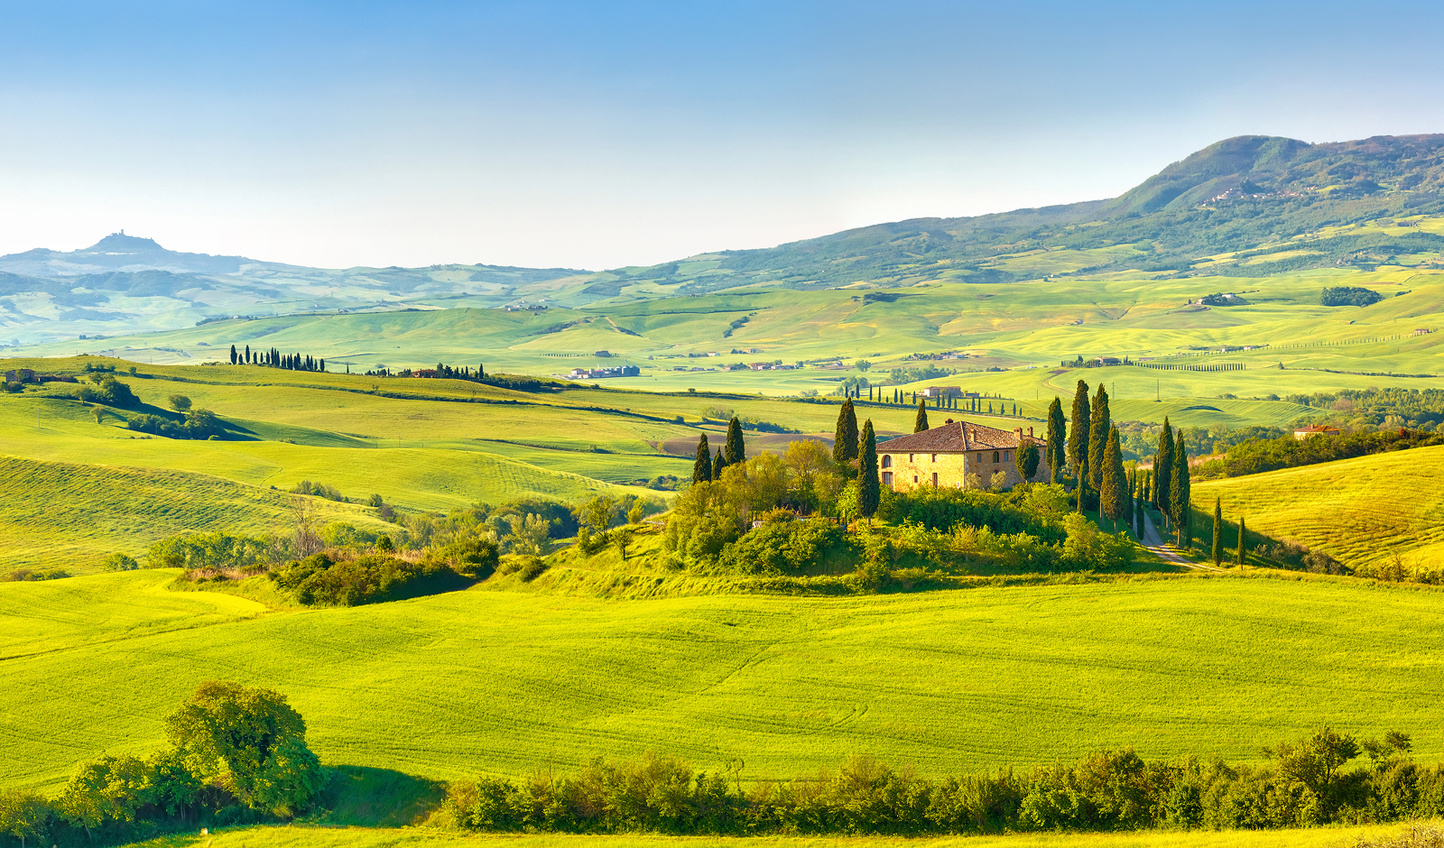 Peace and tranquility in Tuscany